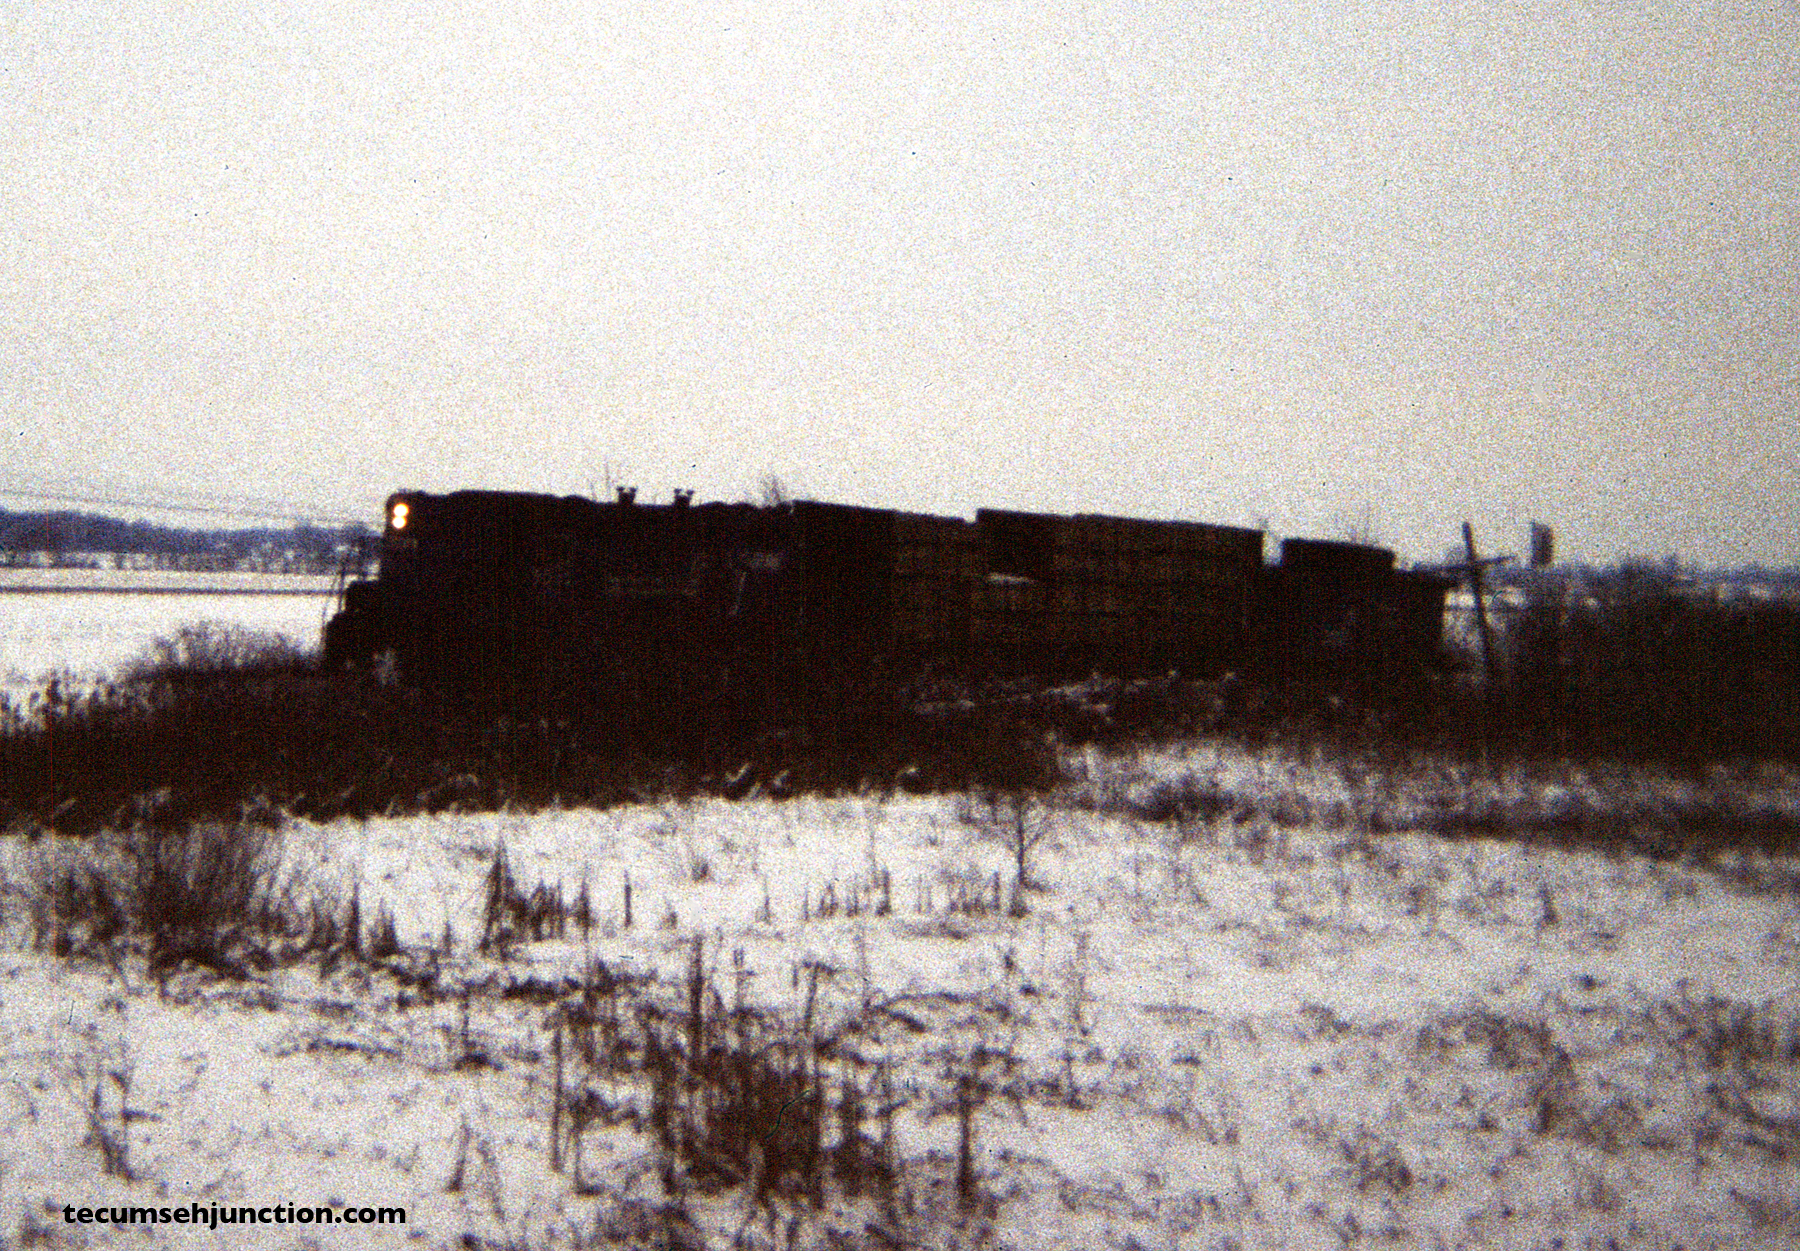 Having dropped off cars to the Lenawee County Railroad, the train heads north with just one car, here passing the approach signal to the N&W diamonds at Raisin Center, Michigan.. (12 December 1981)